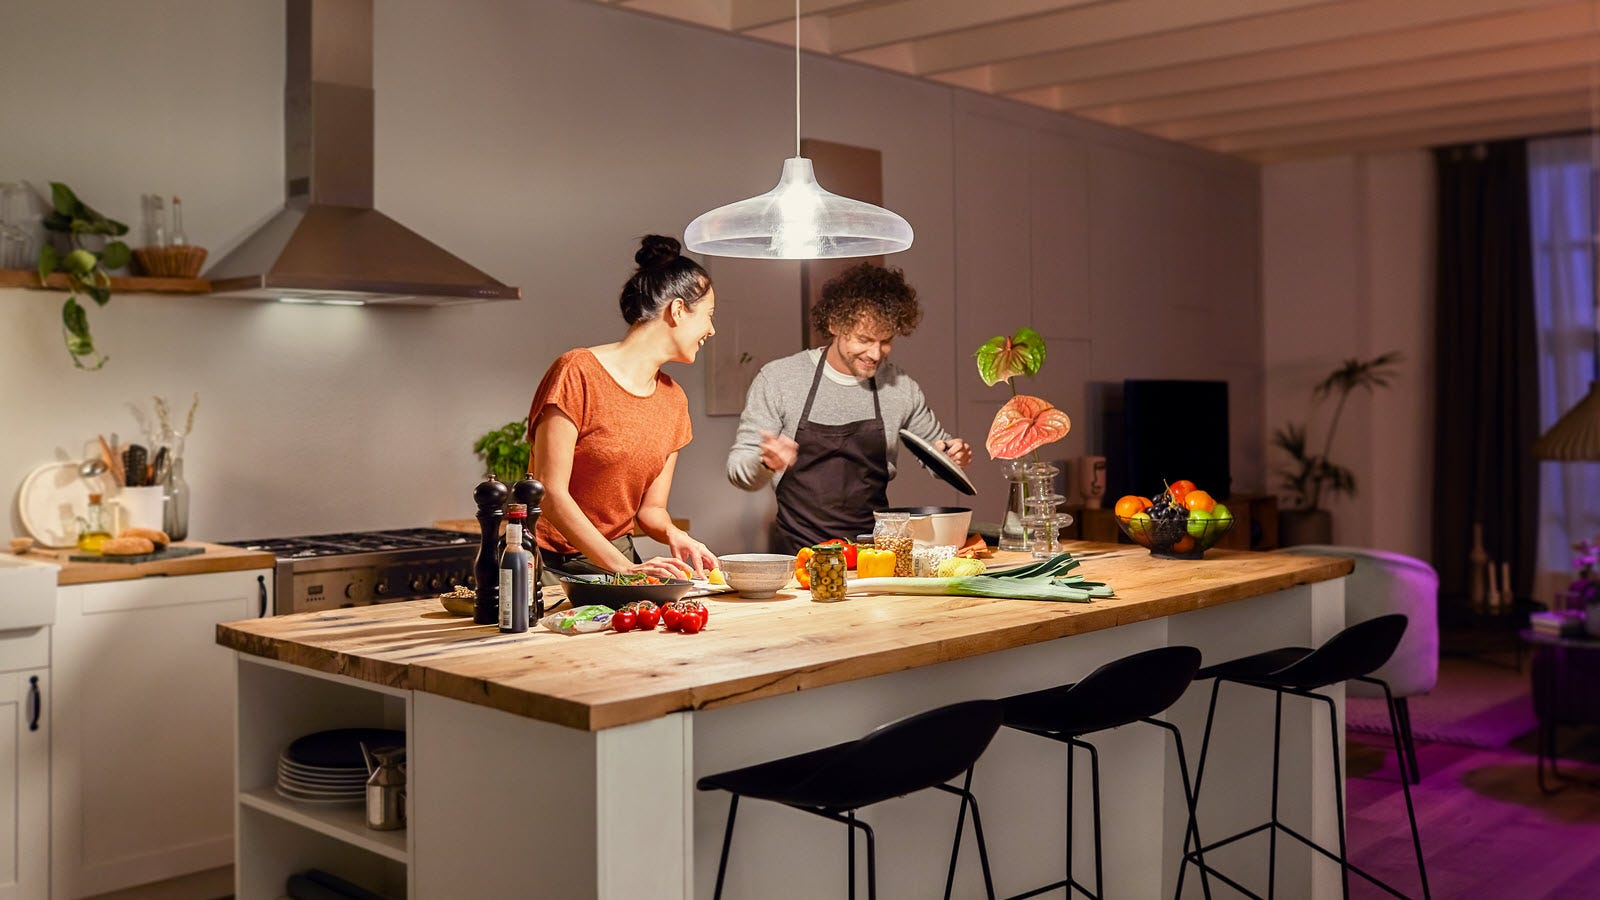 A photo of the Philips Hue White smart lamp in a kitchen.